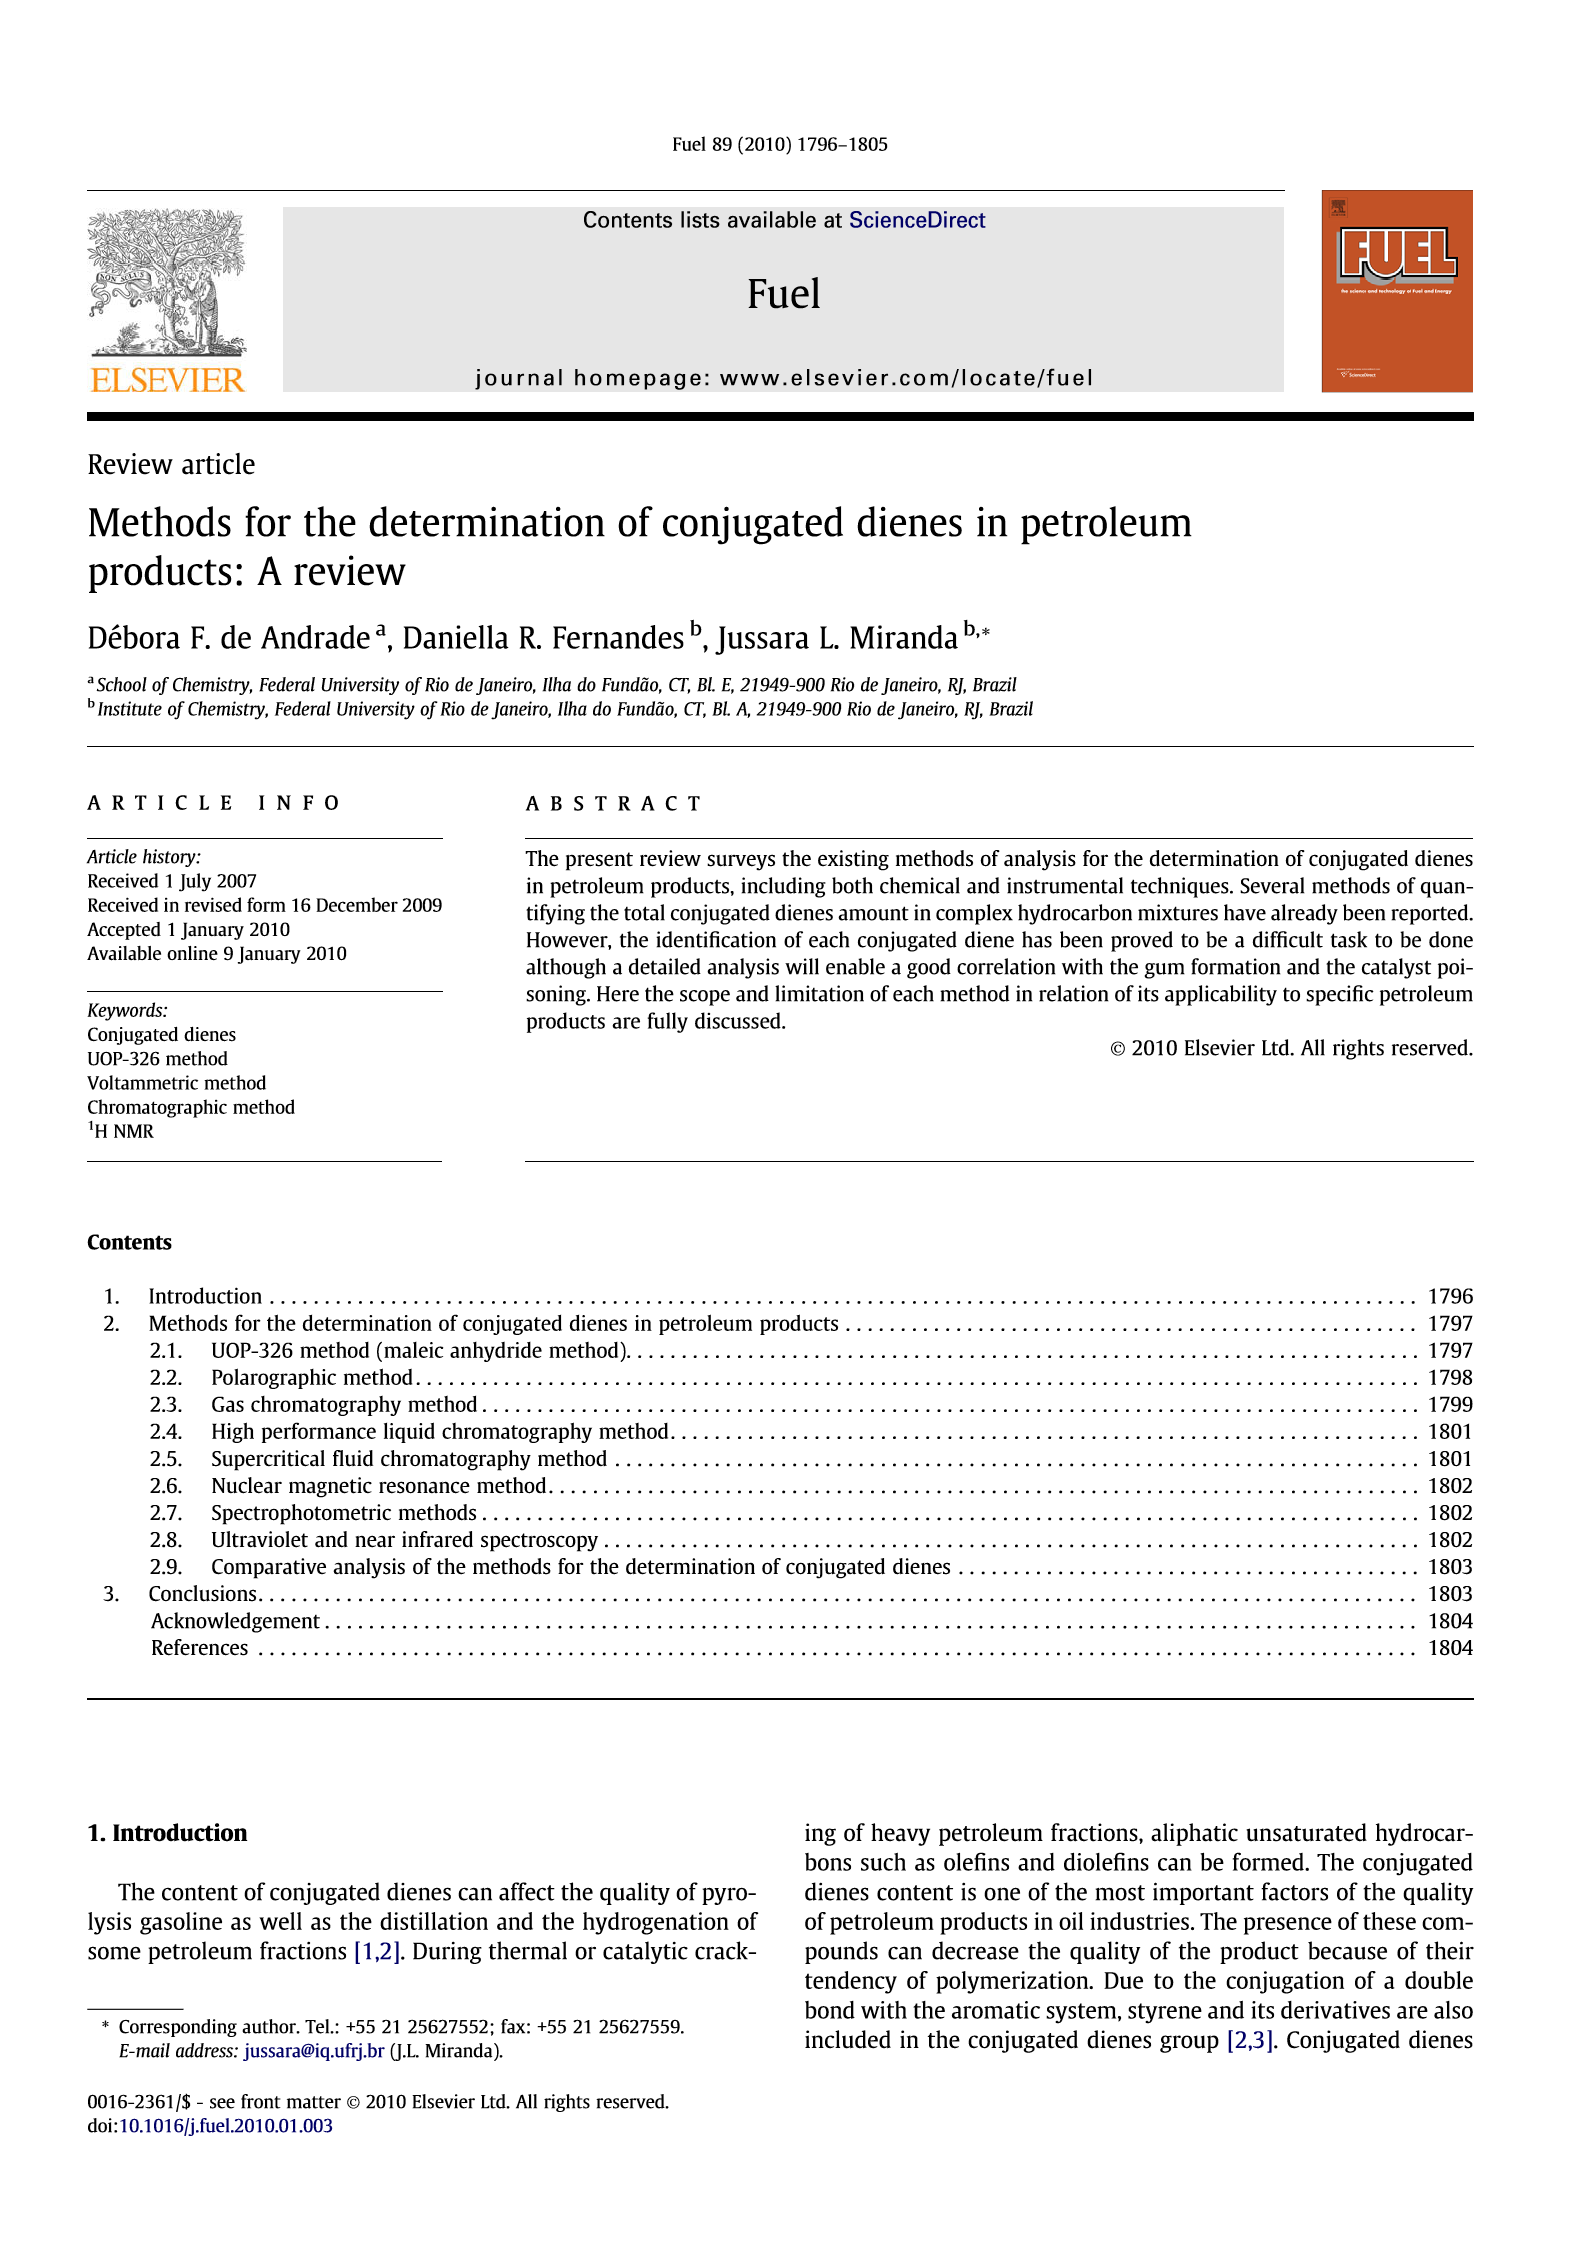 Methods For The Determination Of Conjugated Dienes In Petroleum Products A Review Fuel Onacademic